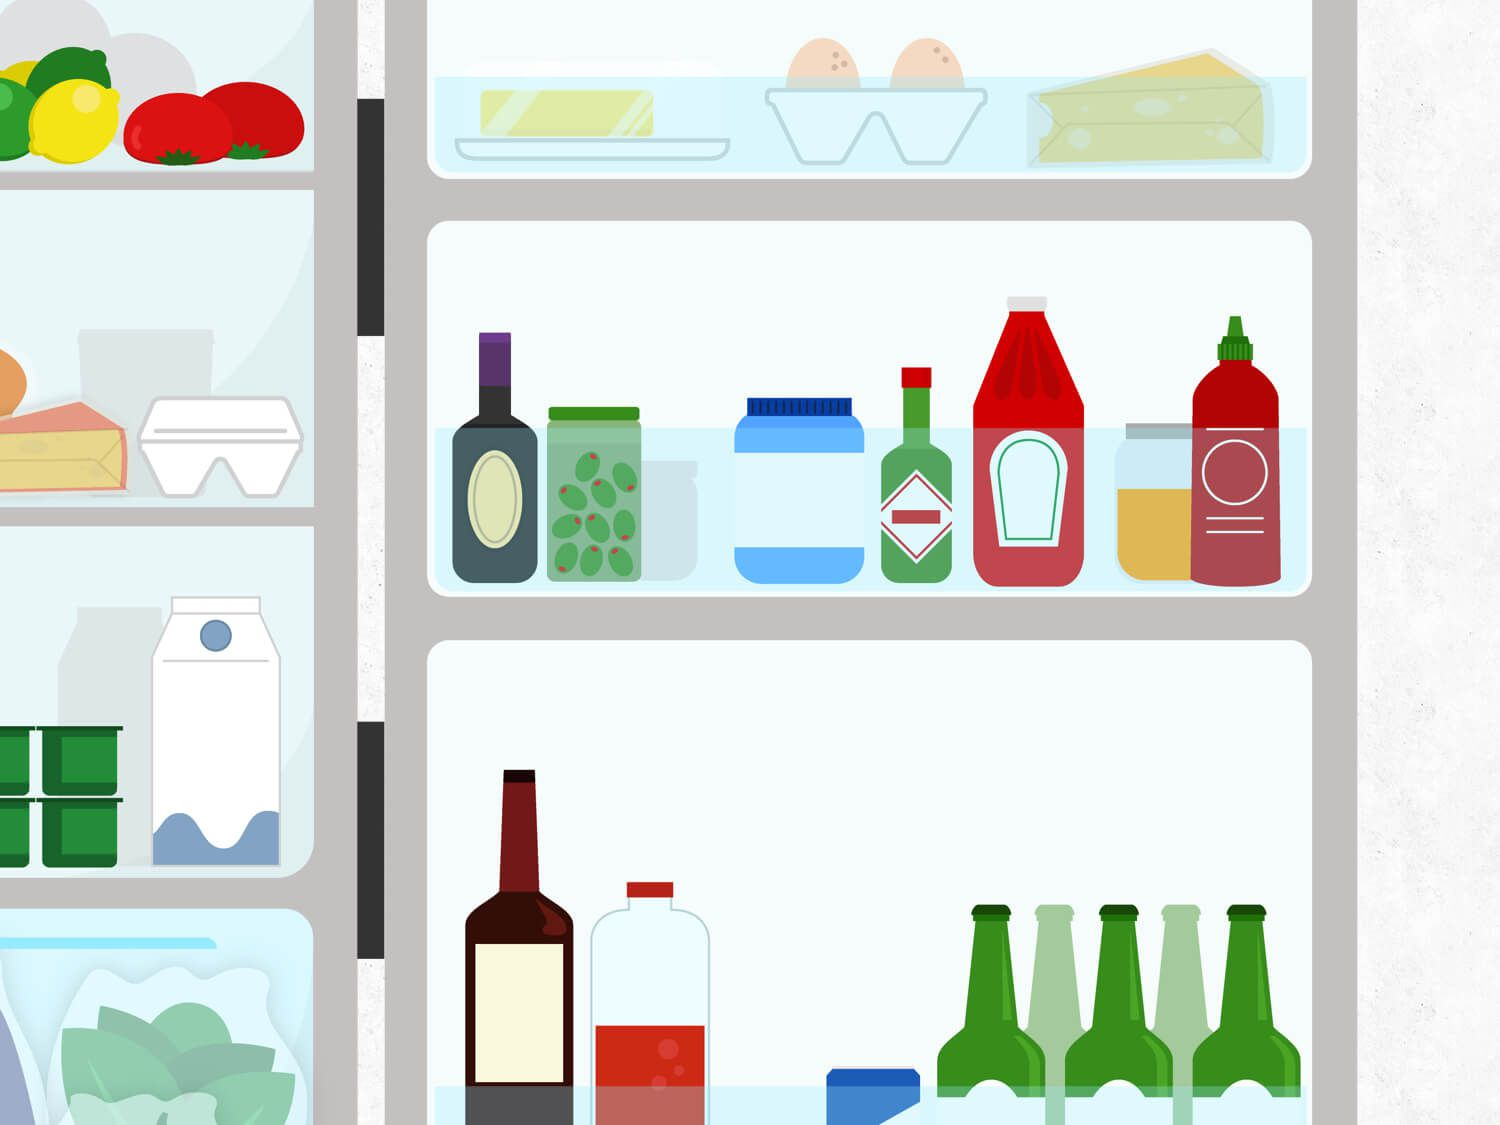 Graphic illustration of the side shelves on a refrigerator door, holding various bottles and jars, eggs, butter, and cheese